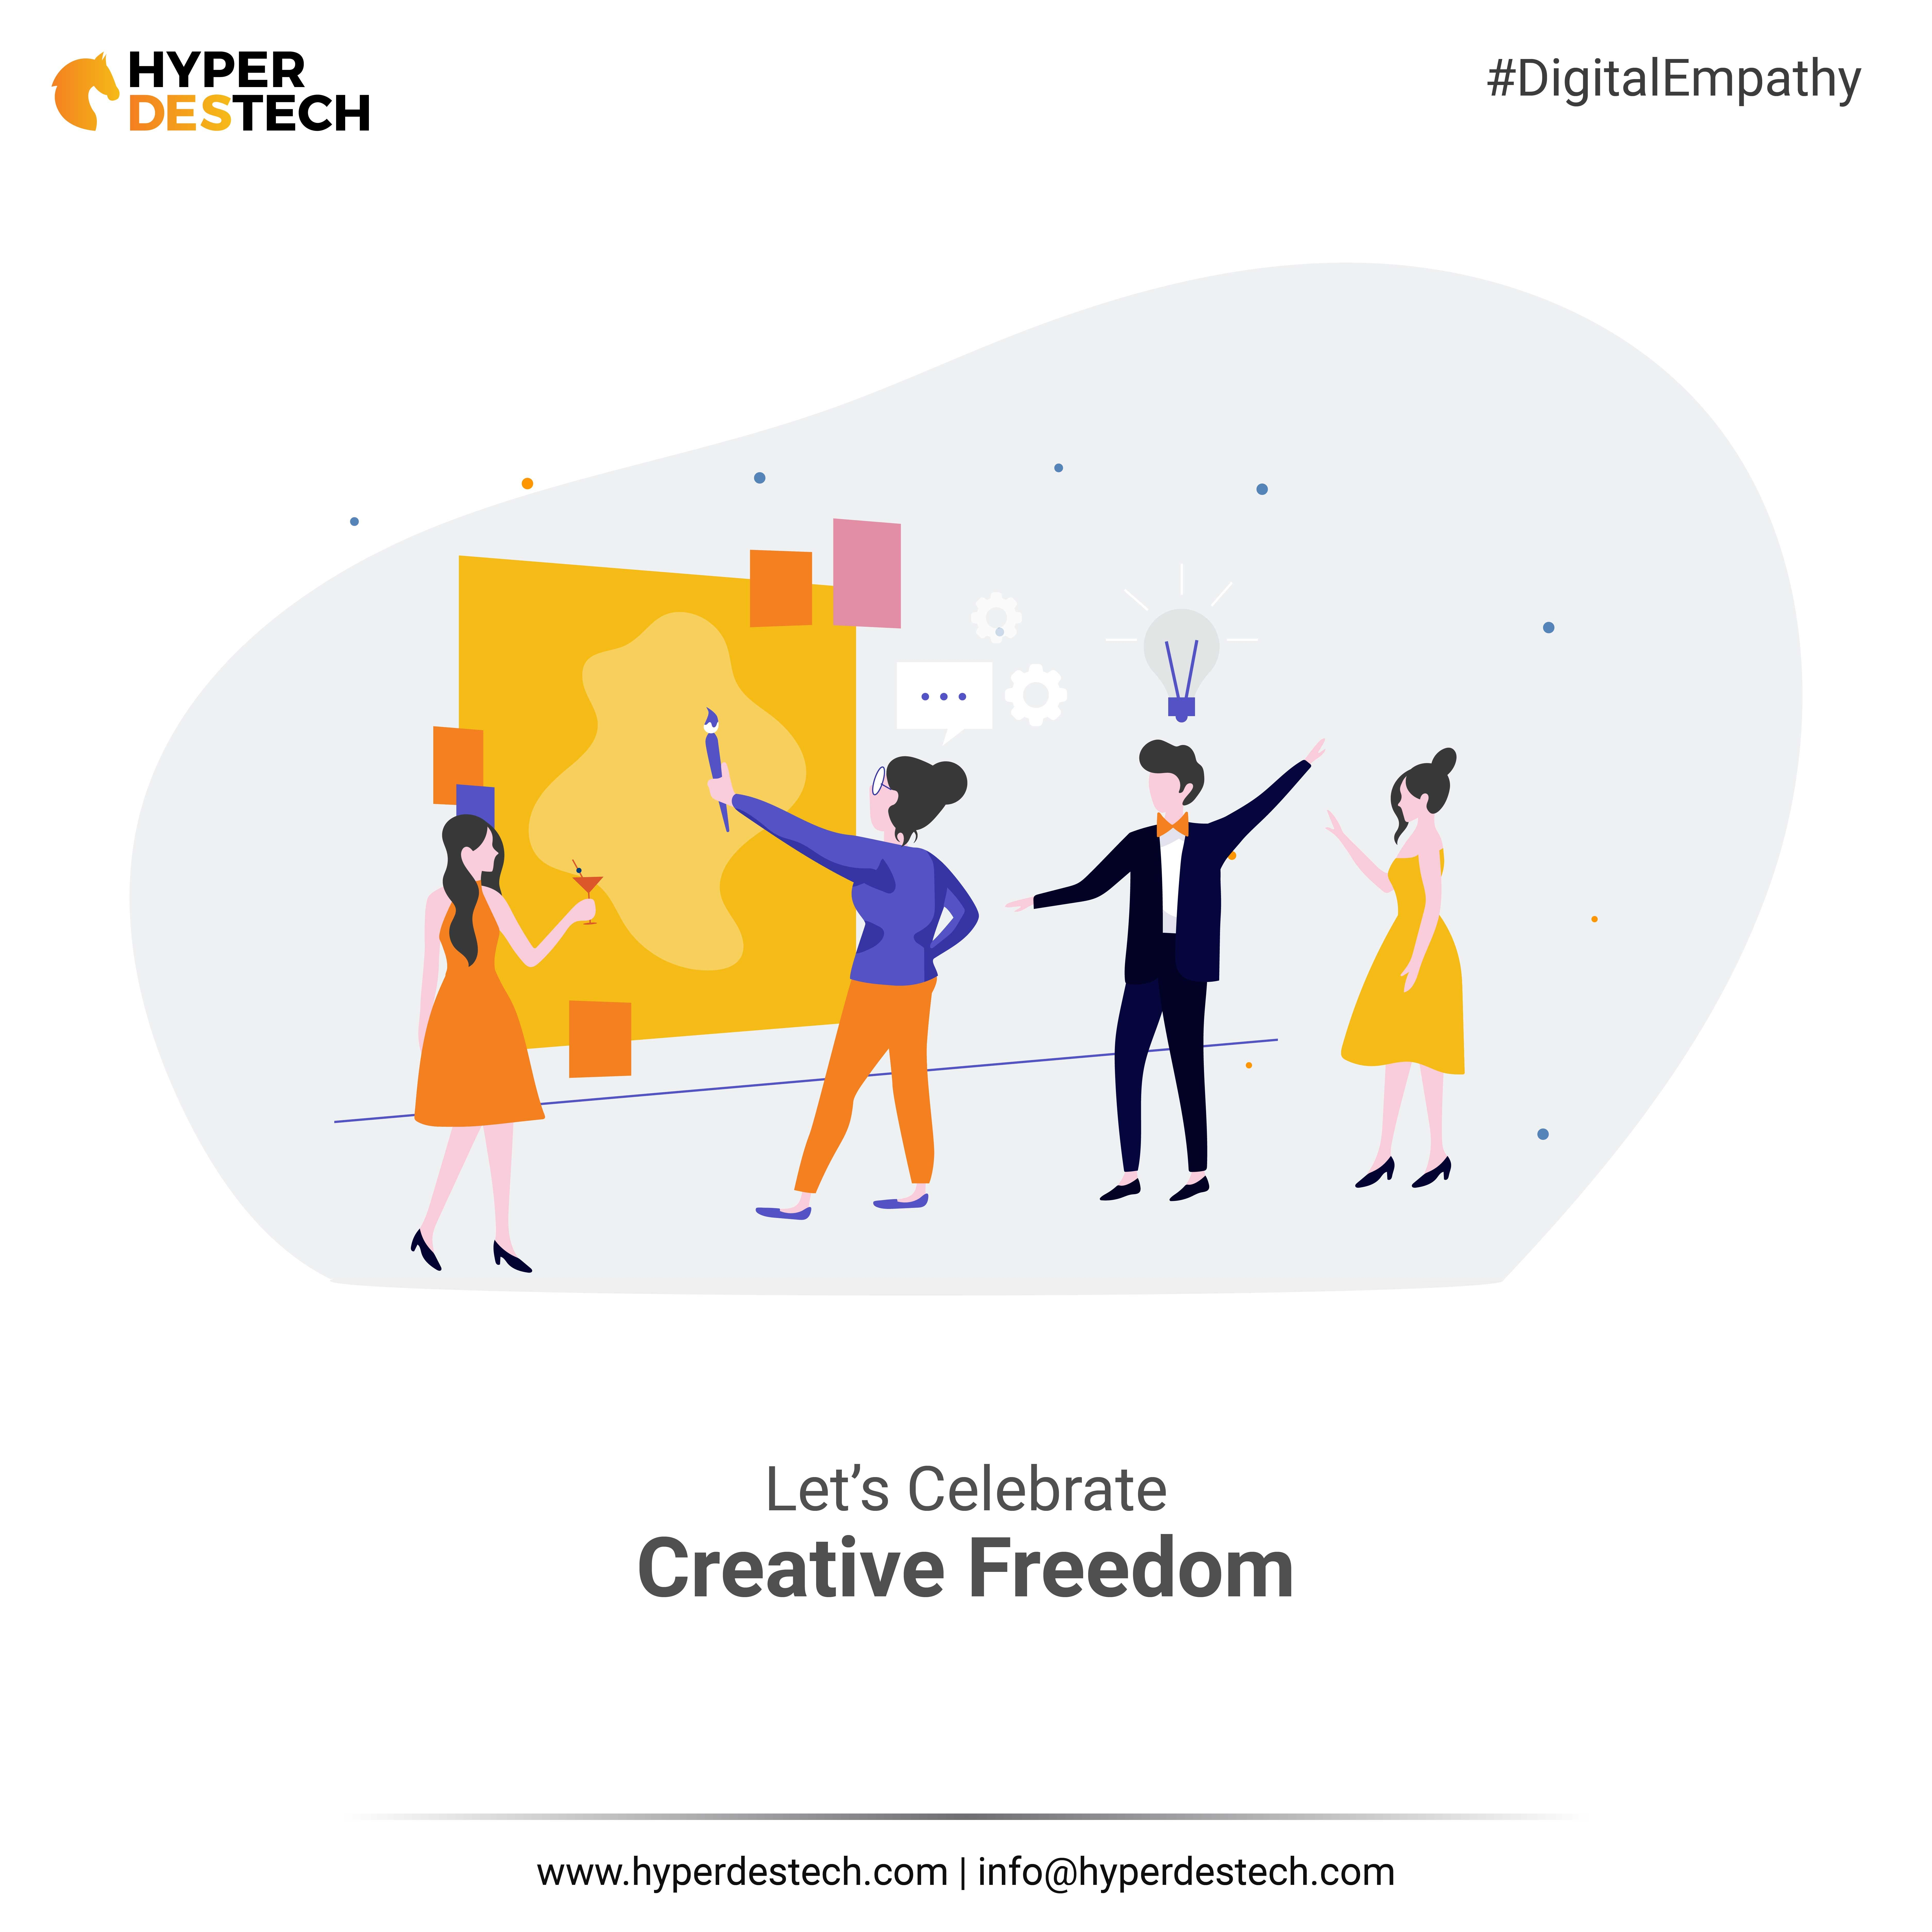 We Will Use Your And Our Creative Ideas To Make The Work Better Let S Celebrate Creative Freedom Let S Empathize Digitally Creative Digital Lets Celebrate